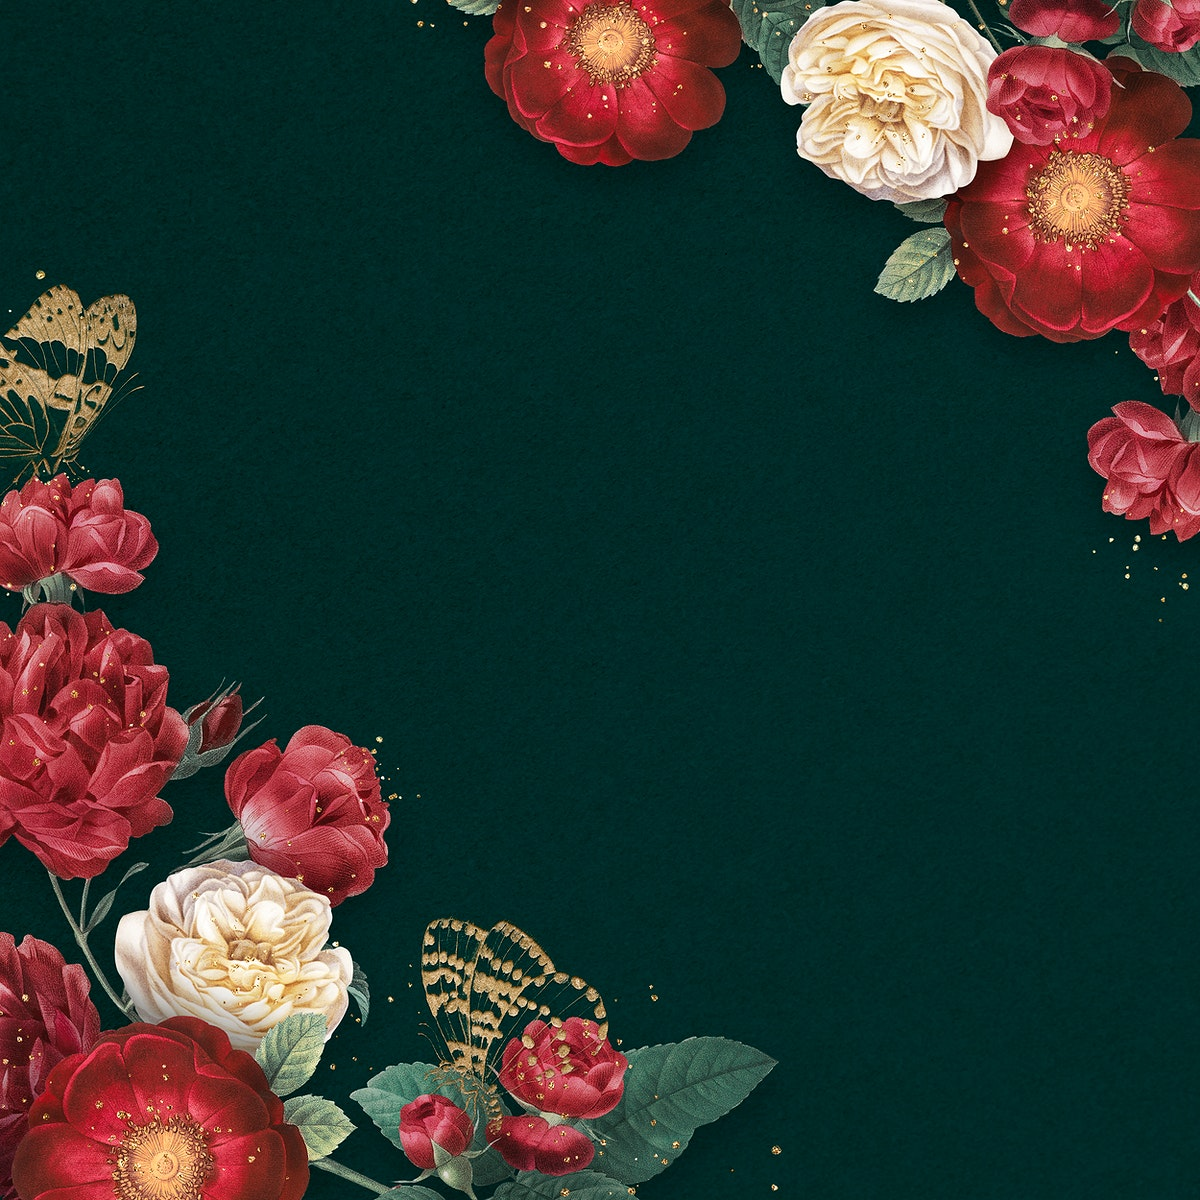 Luxury red roses border watercolor green background